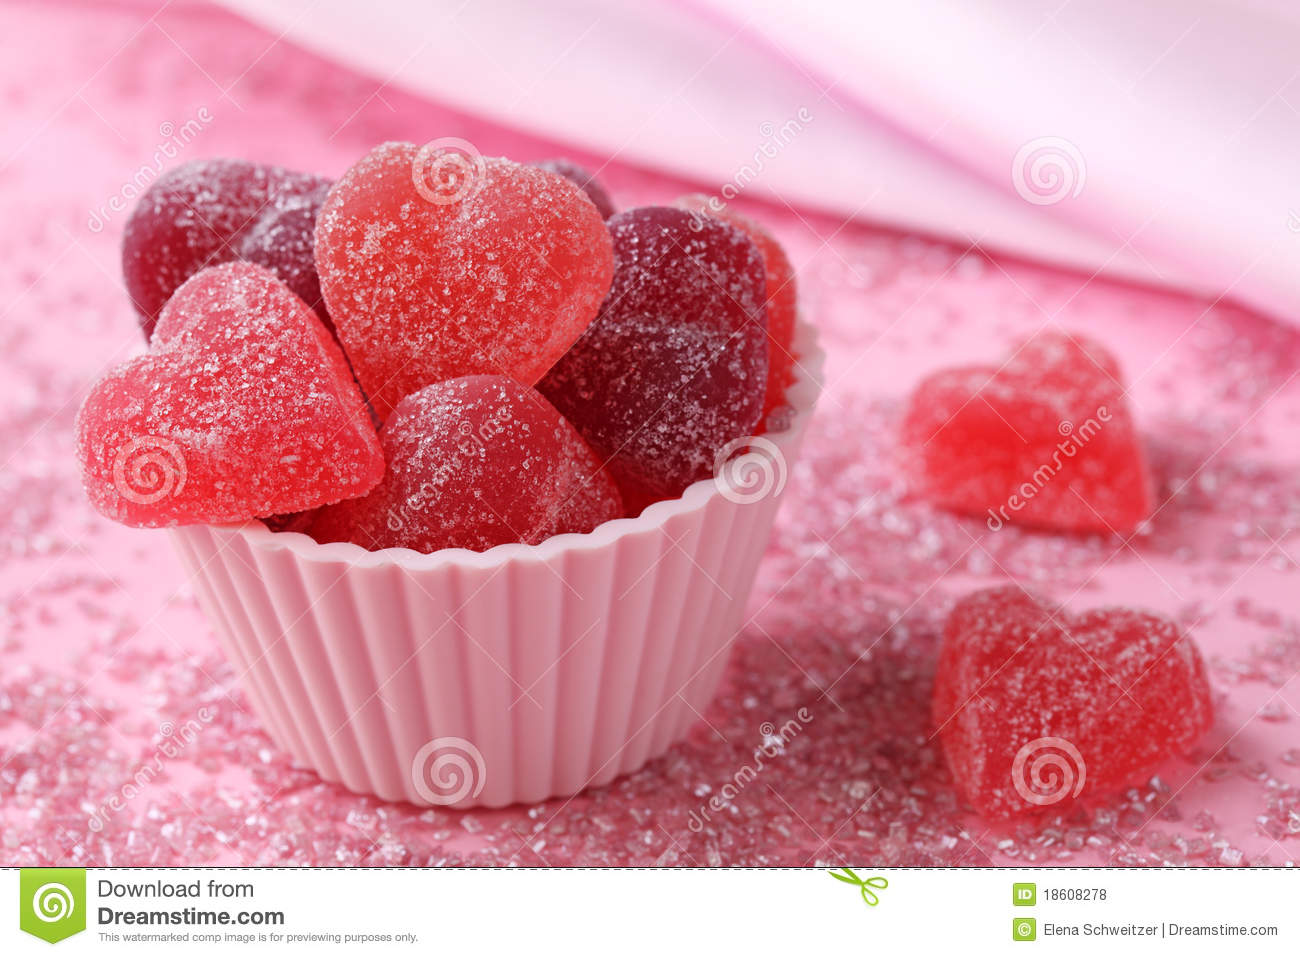 Fruit Jellies Candy Hearts Royalty Free Stock Photos - Image: 18608278